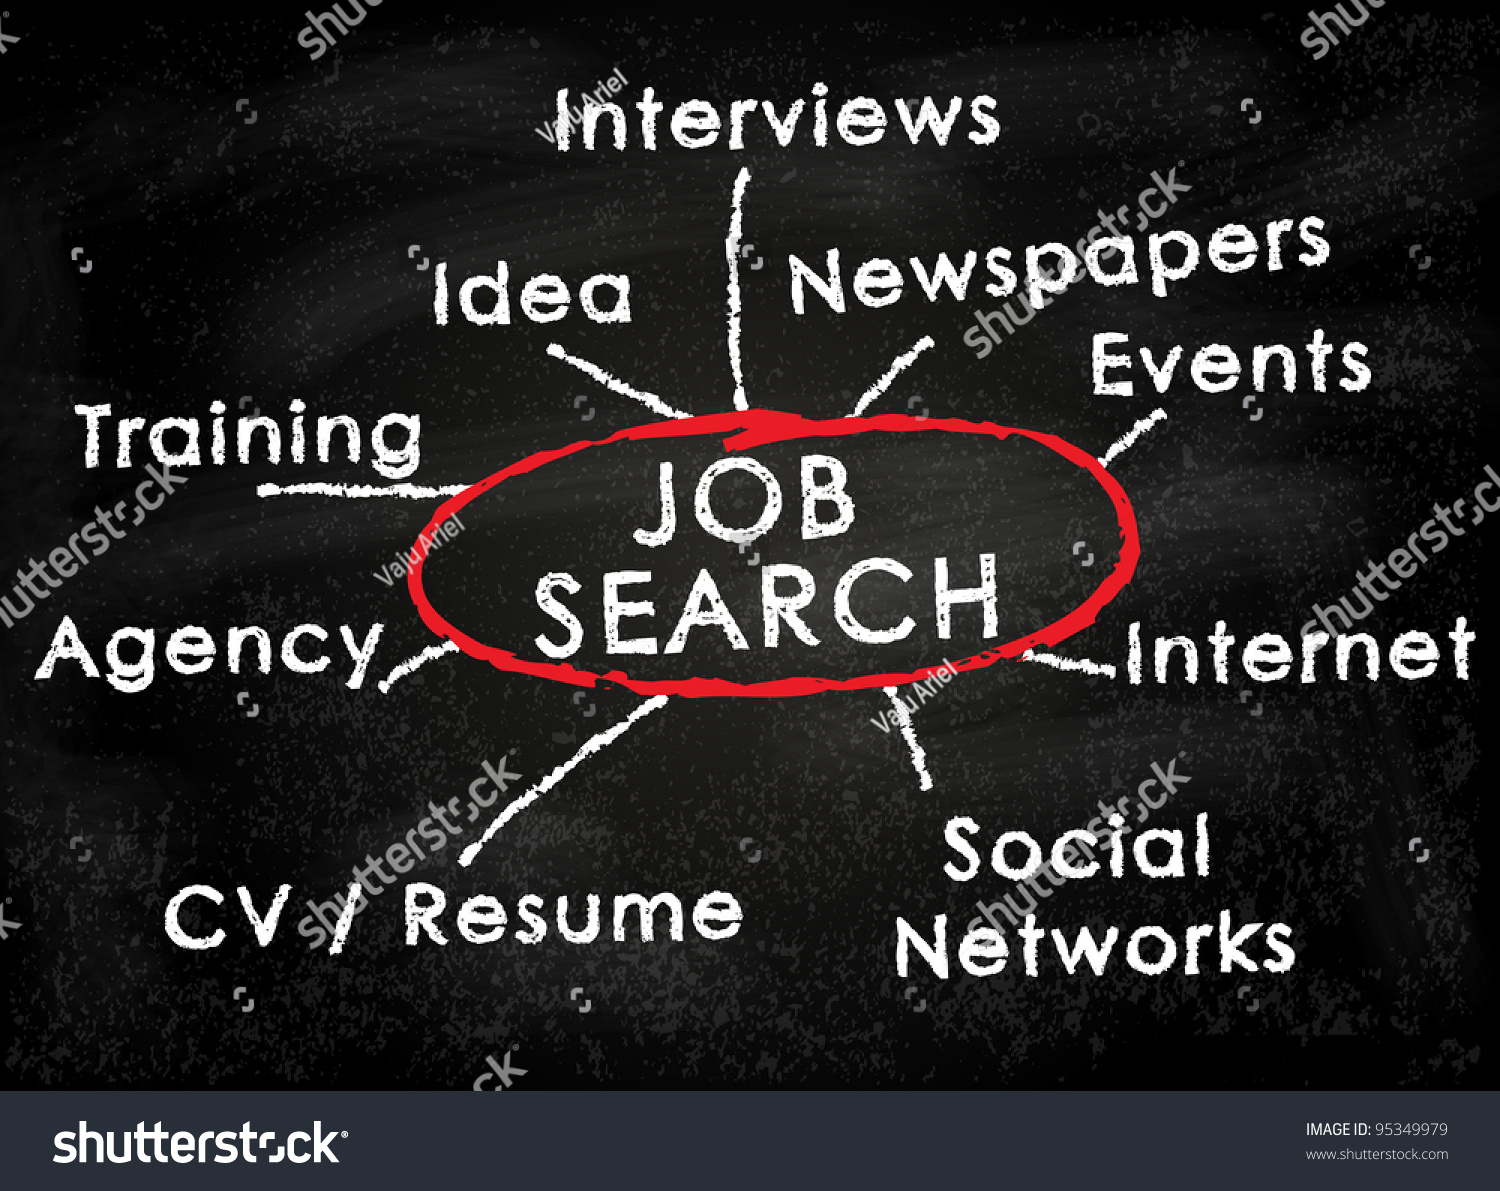 conceptual job search resources   interviews  idea  newspapers  events  agency  cv  resume